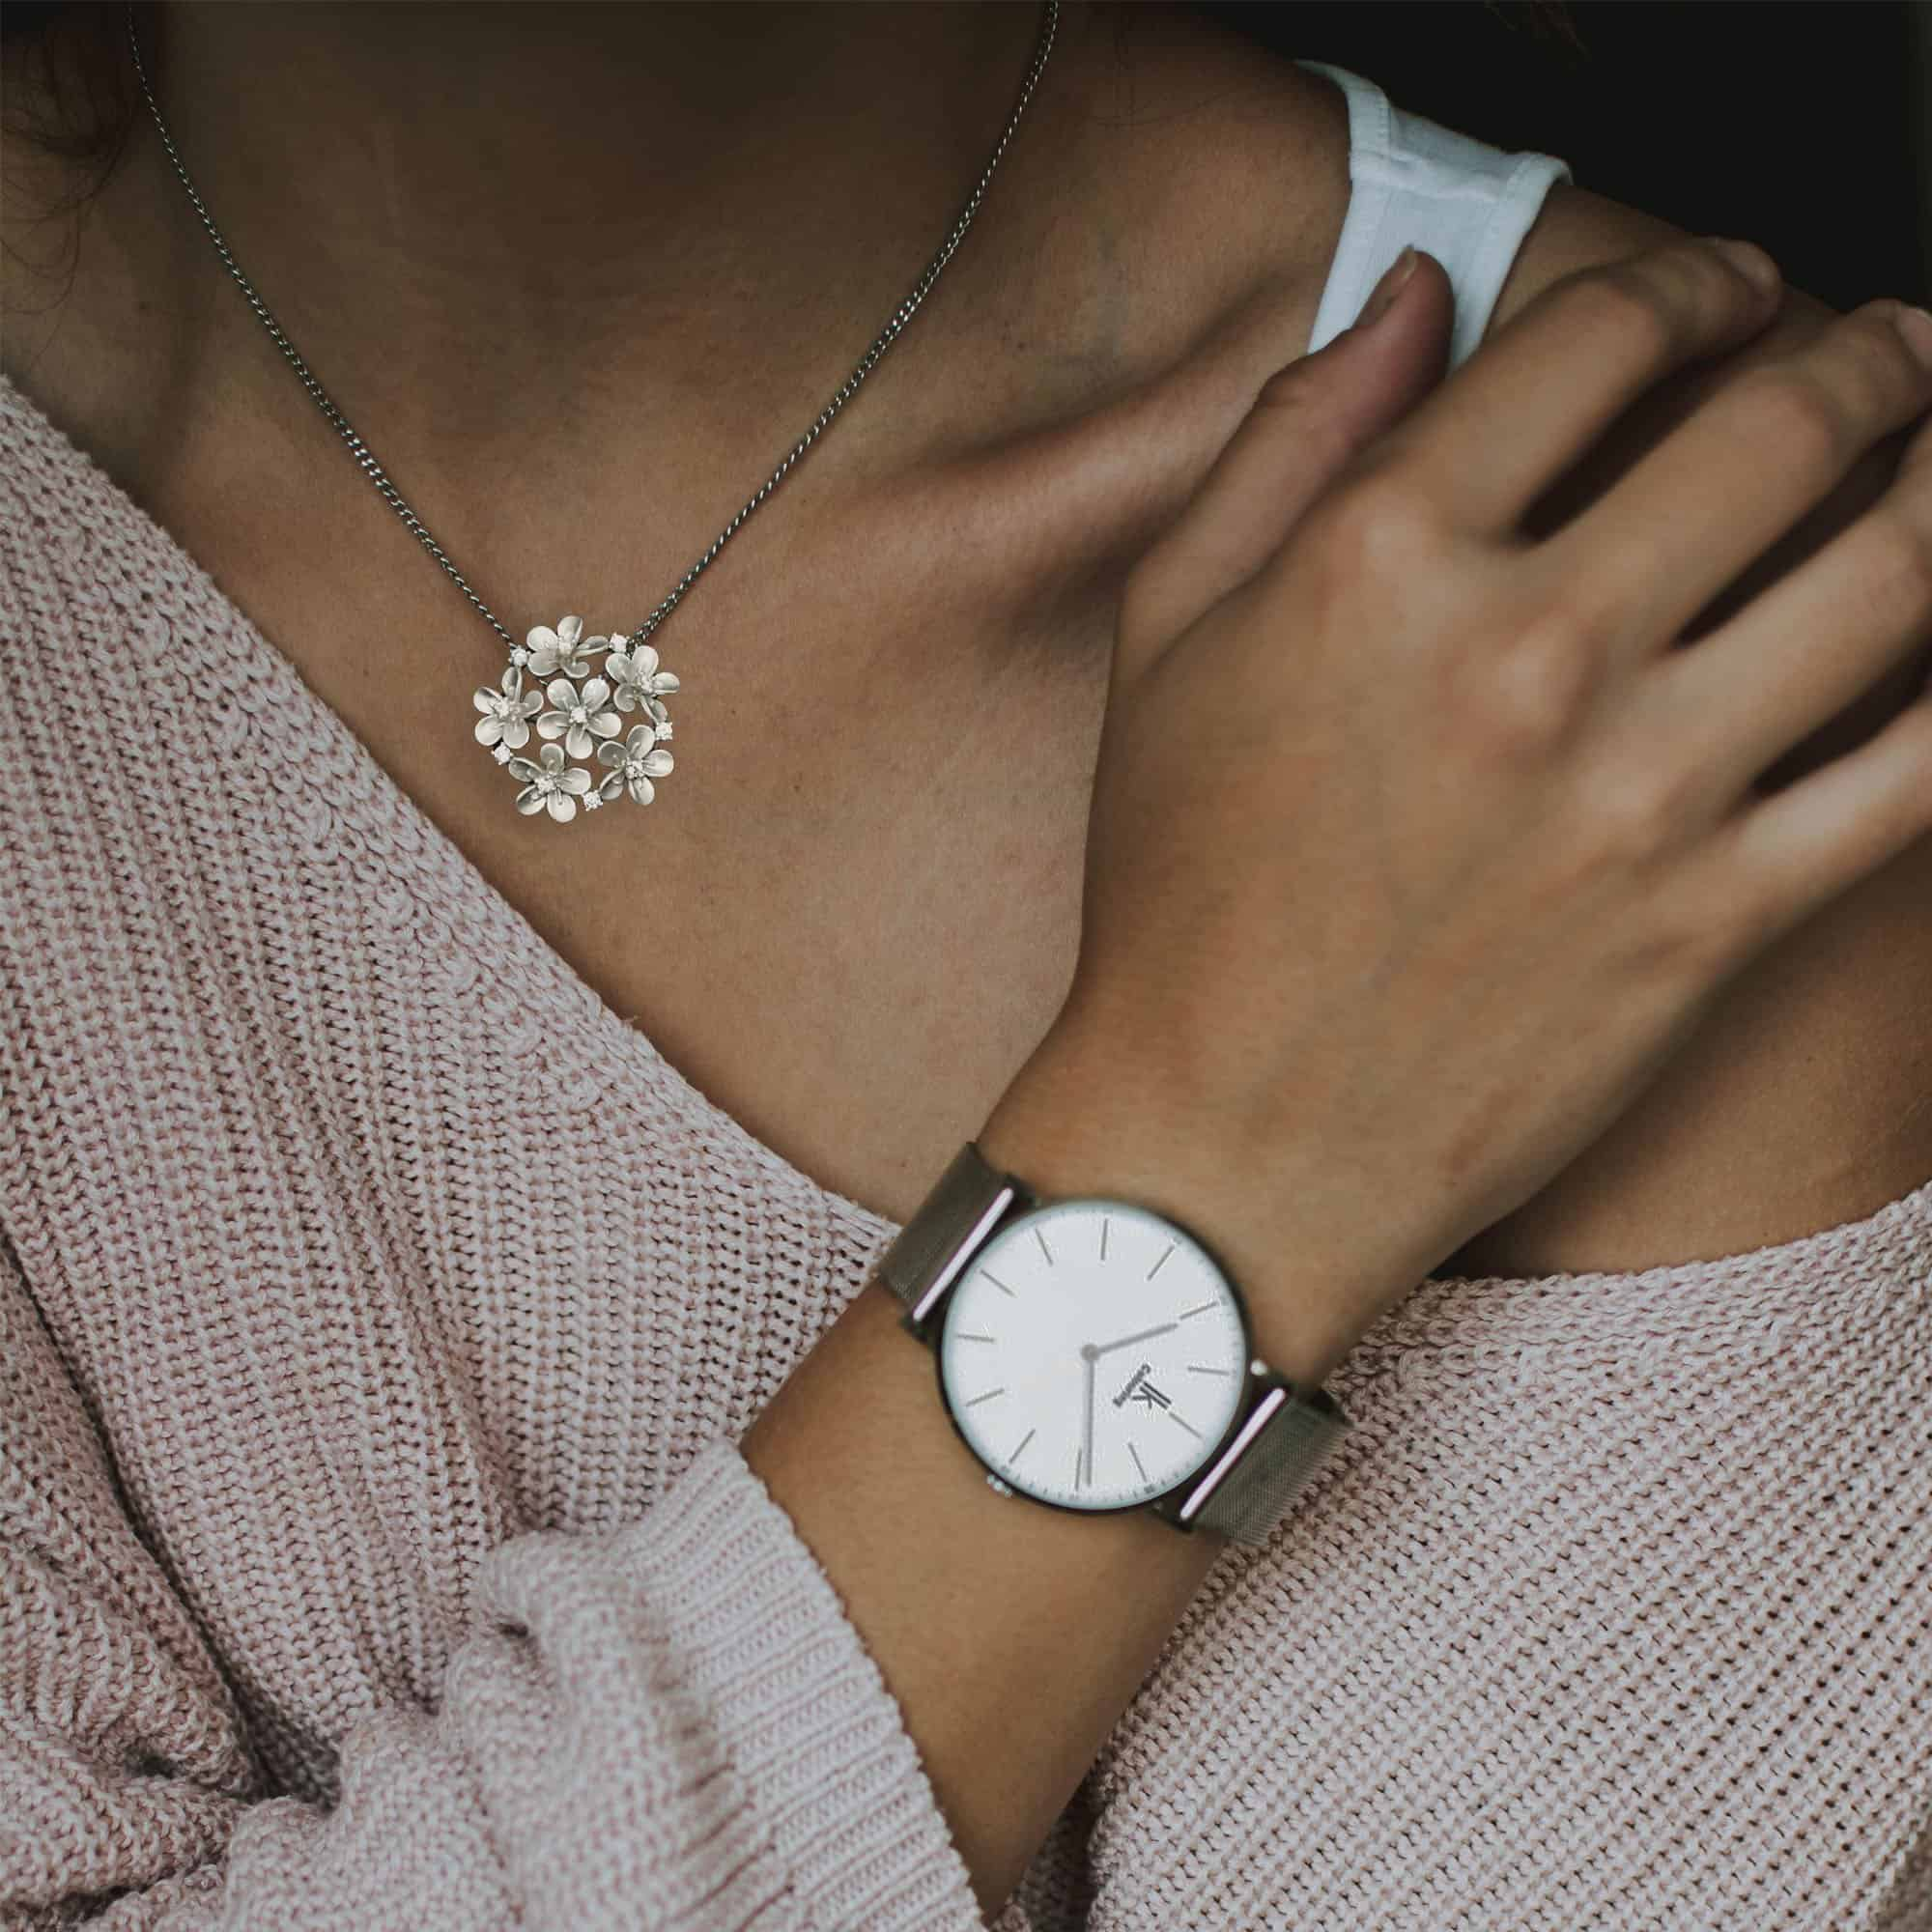 Image showing model wearing Ribelli's sterling silver pendant shaped like a bunch of small flowers studded with American diamonds.